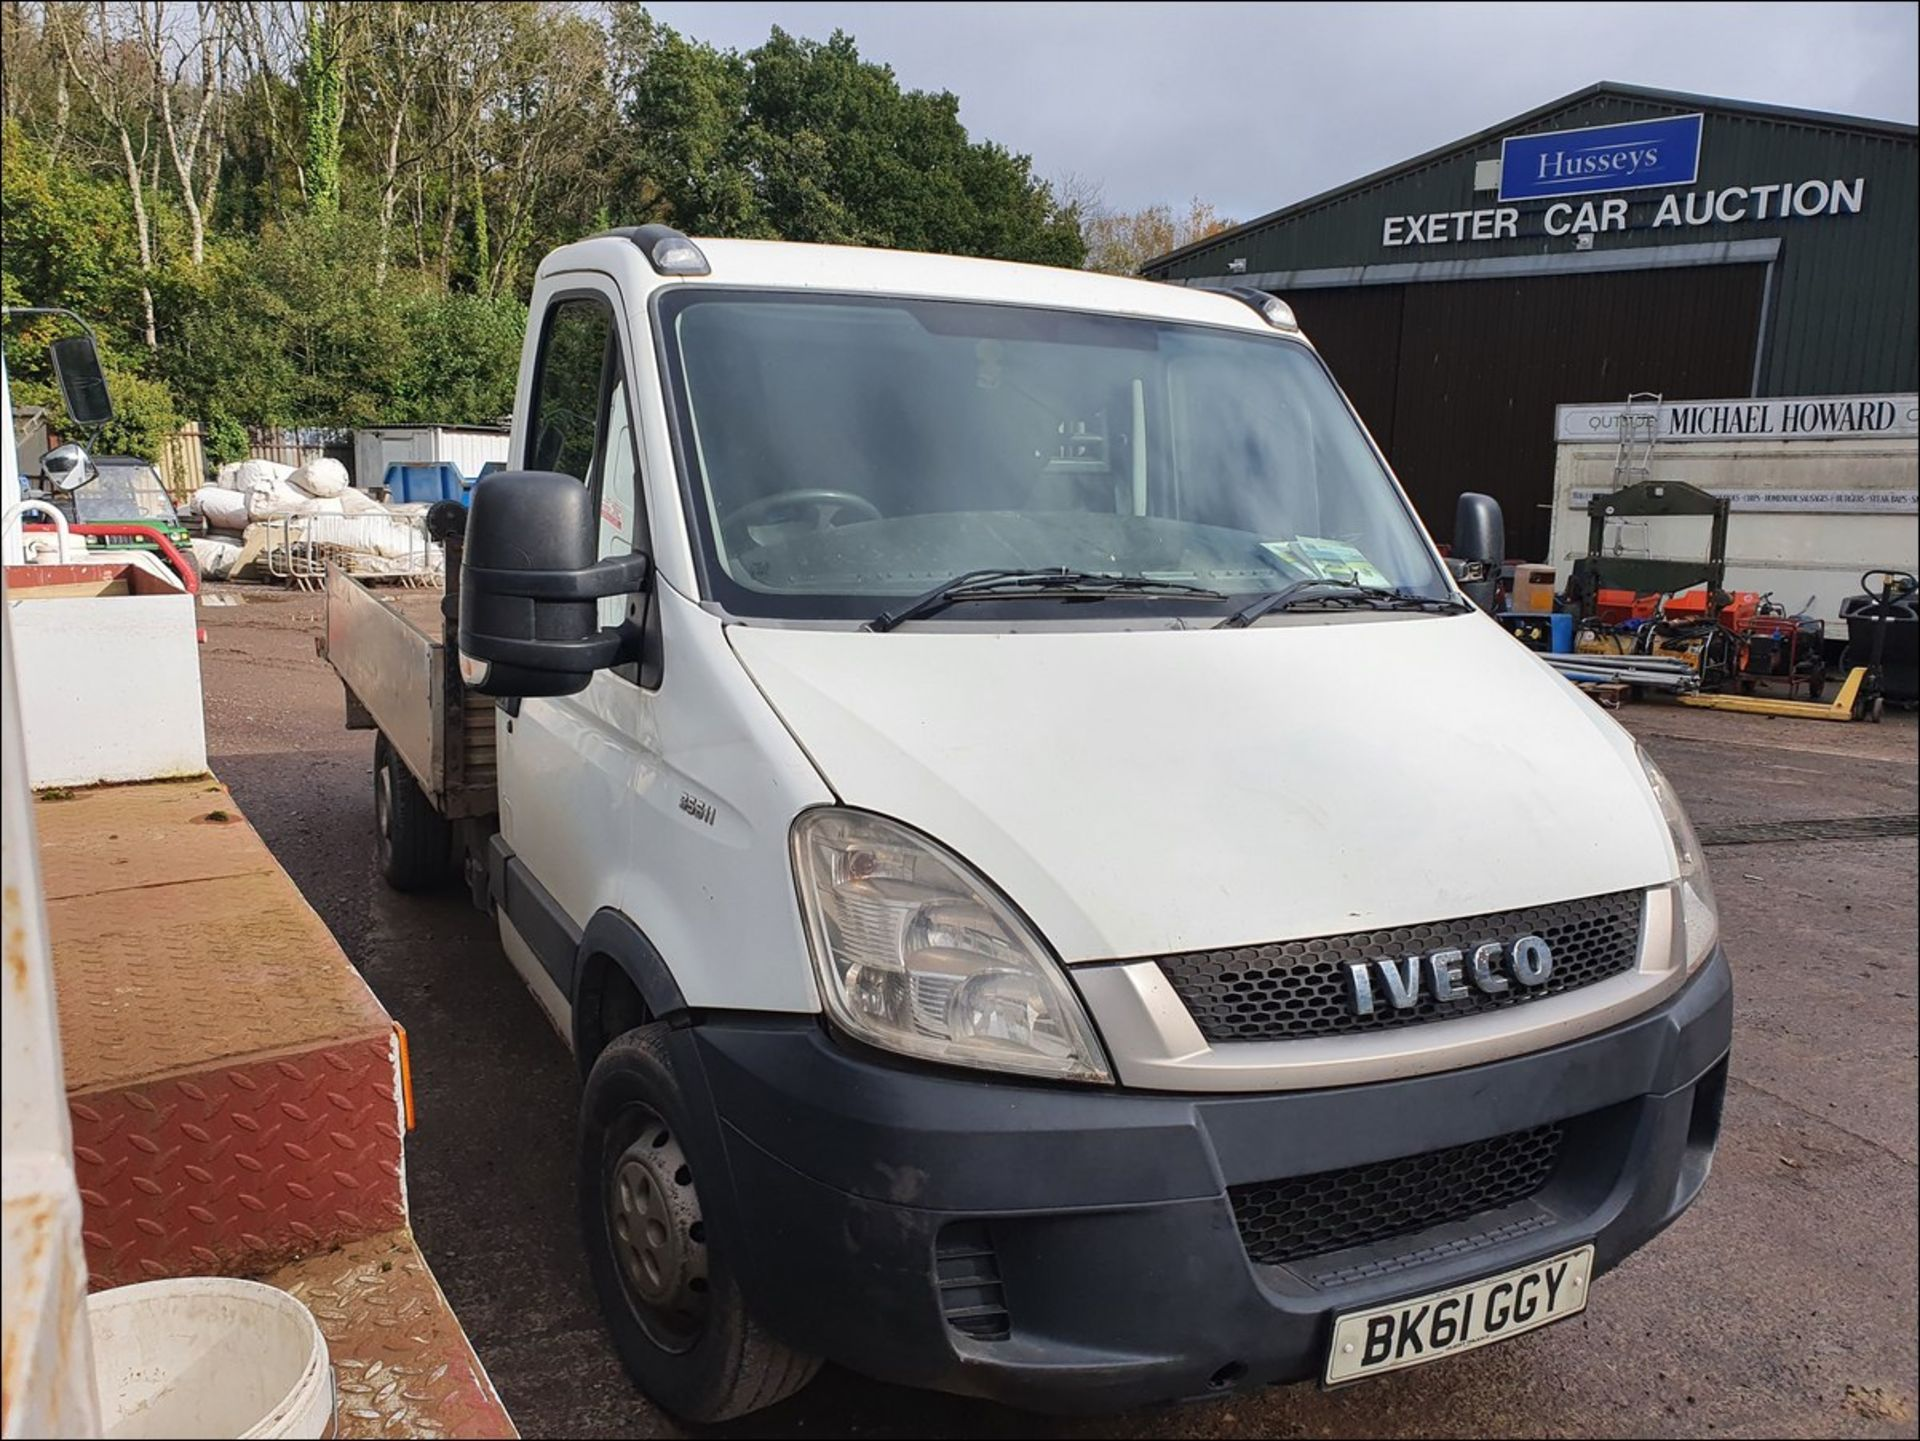 11/61 IVECO DAILY 35S11 MWB - 2287cc 2dr Flat Bed (White/blue, 194k) - Image 3 of 9